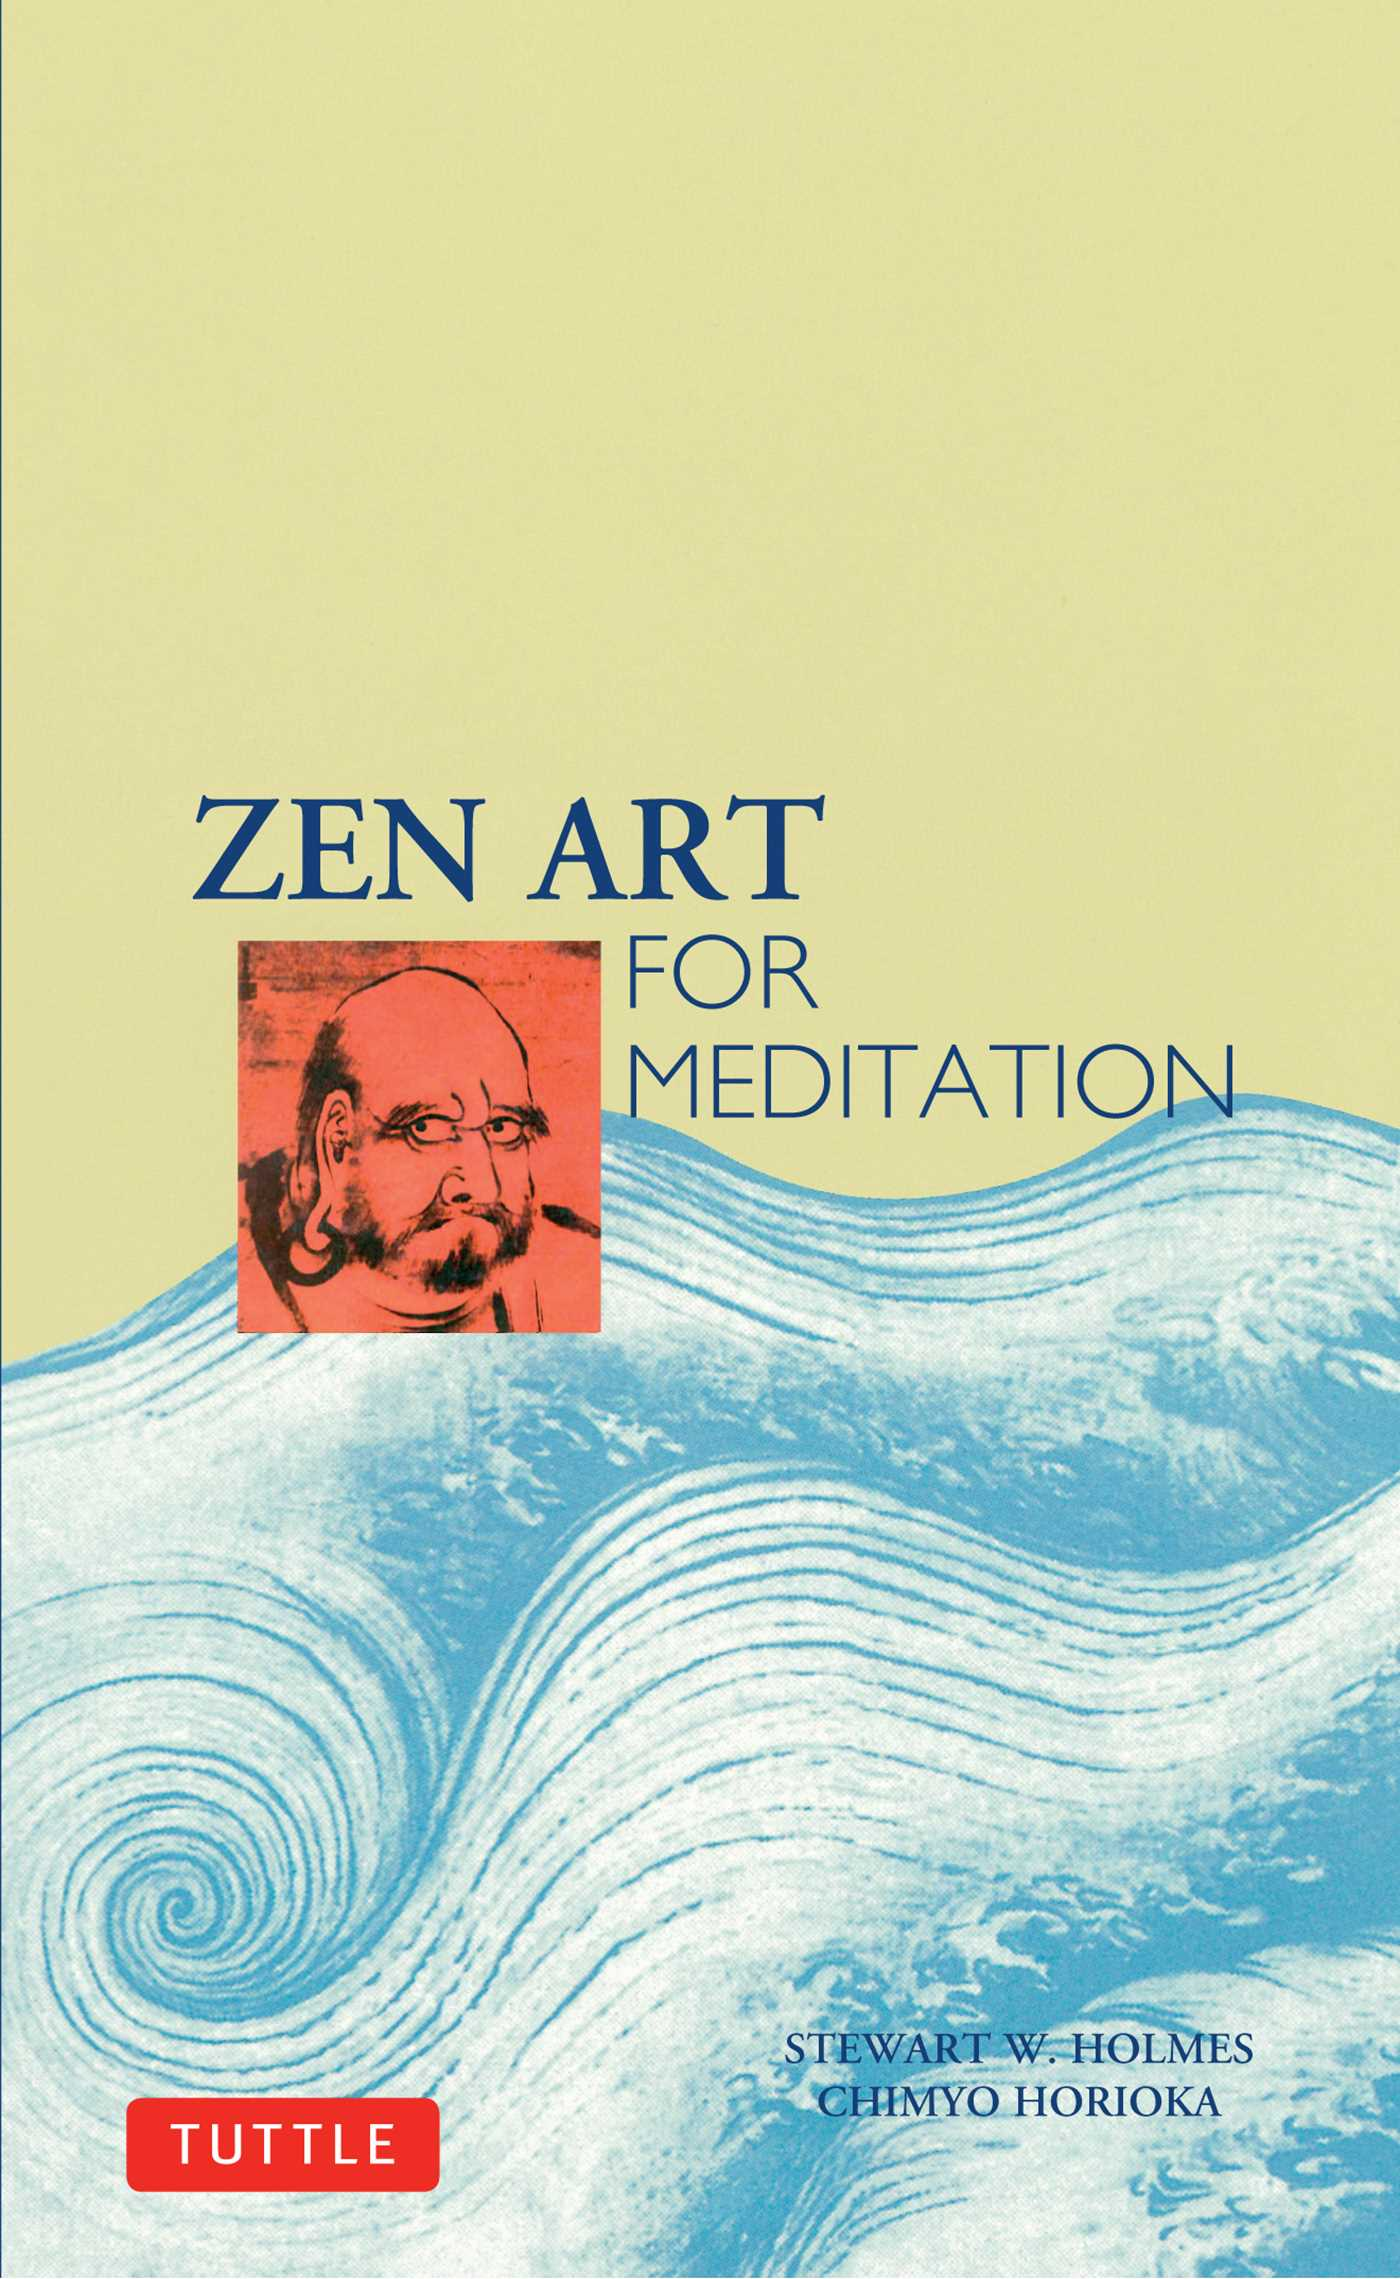 Zen-art-for-meditation-9780804812559_hr